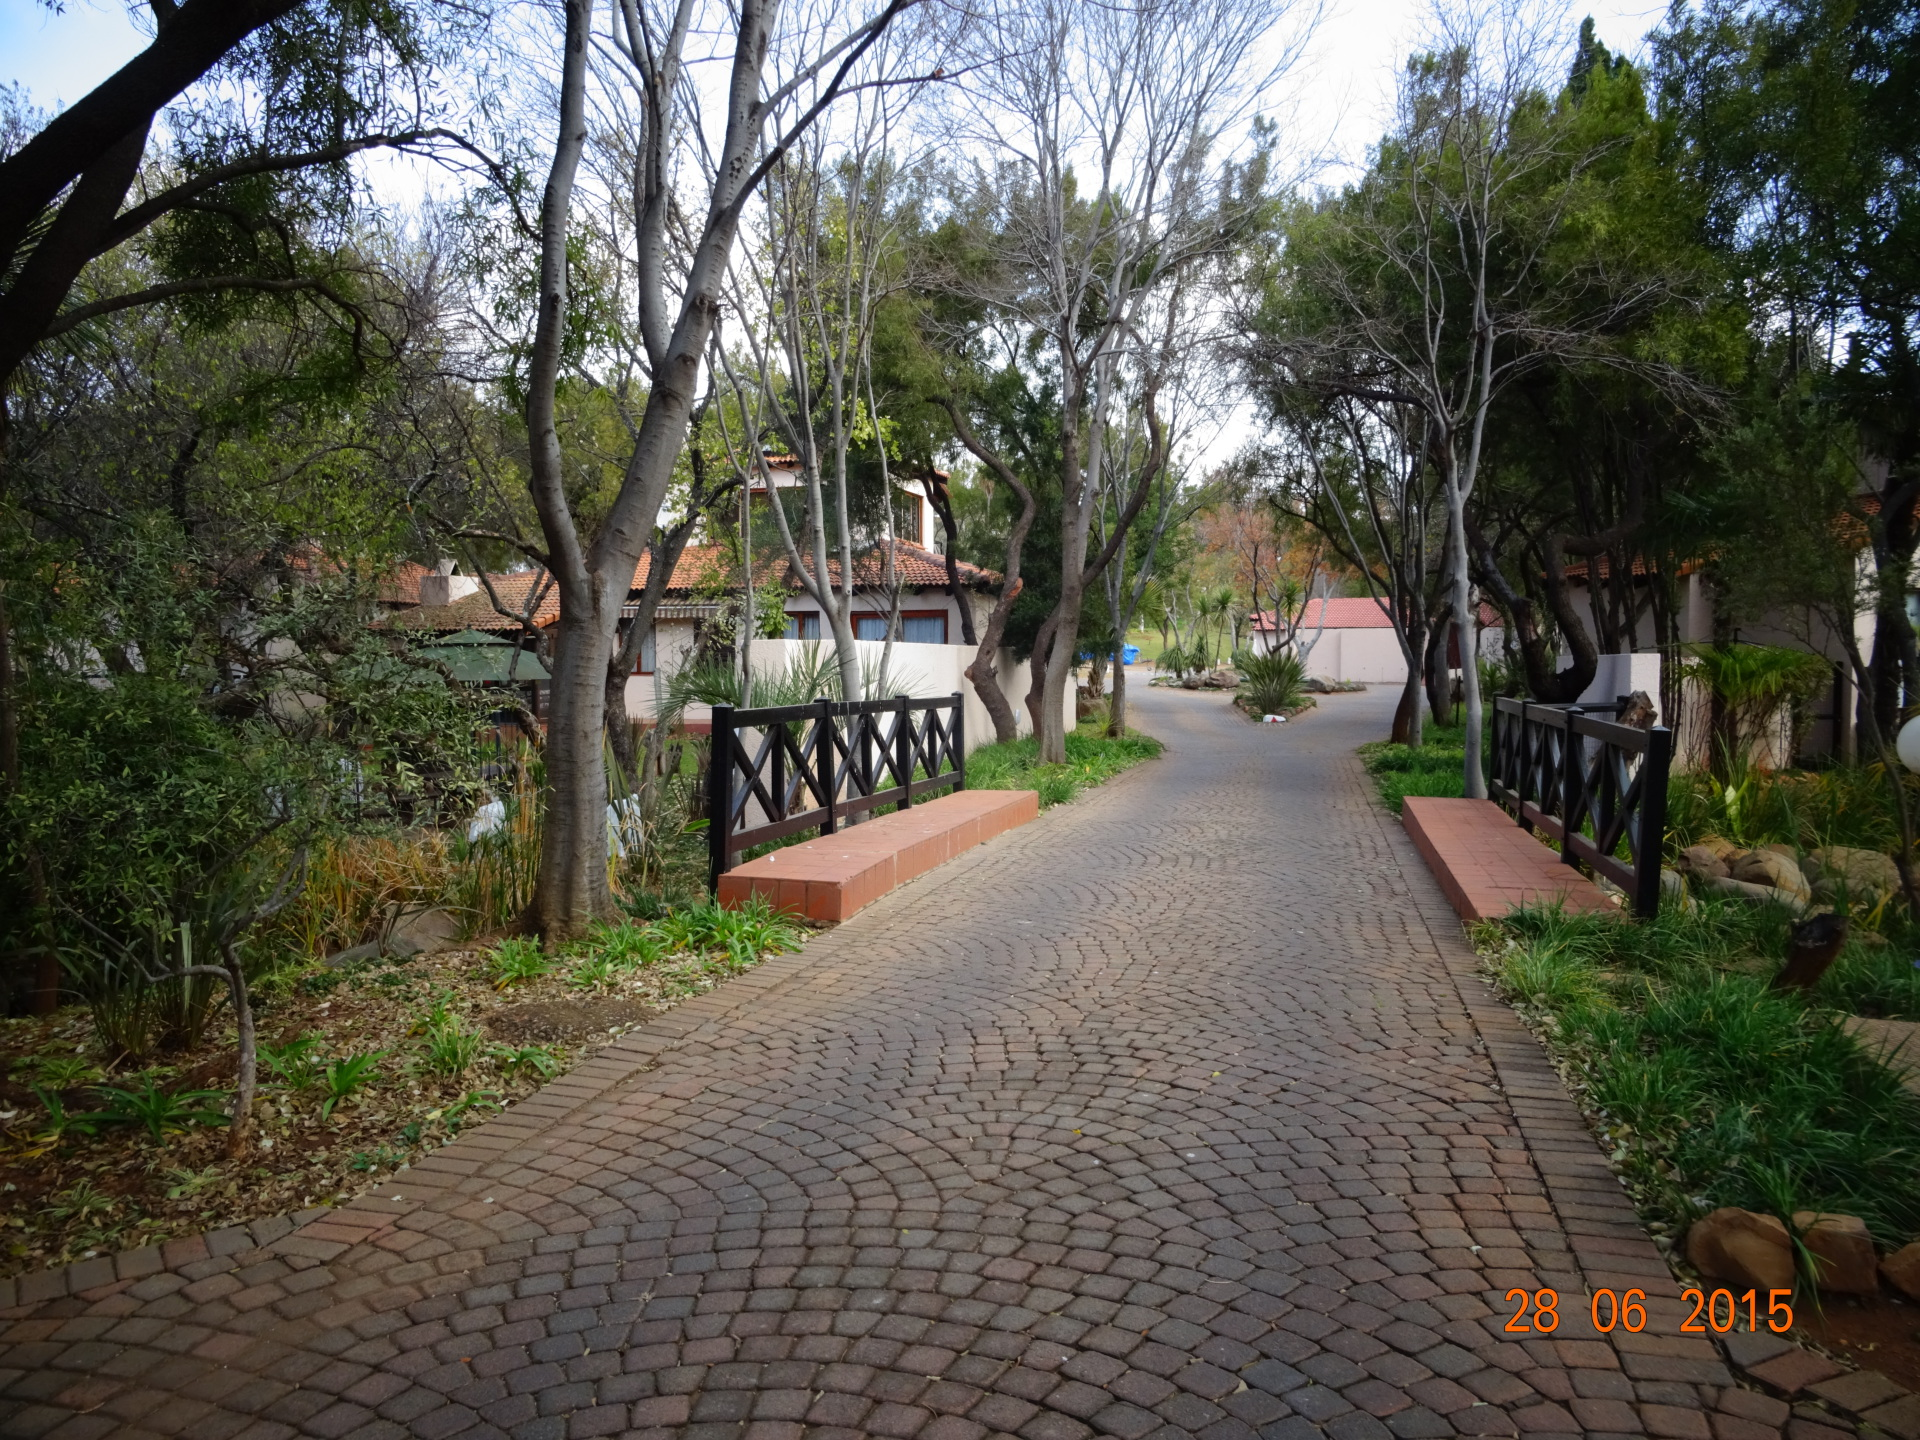 Driveway to parking area - Holiday accommodation Hartbeespoort dam